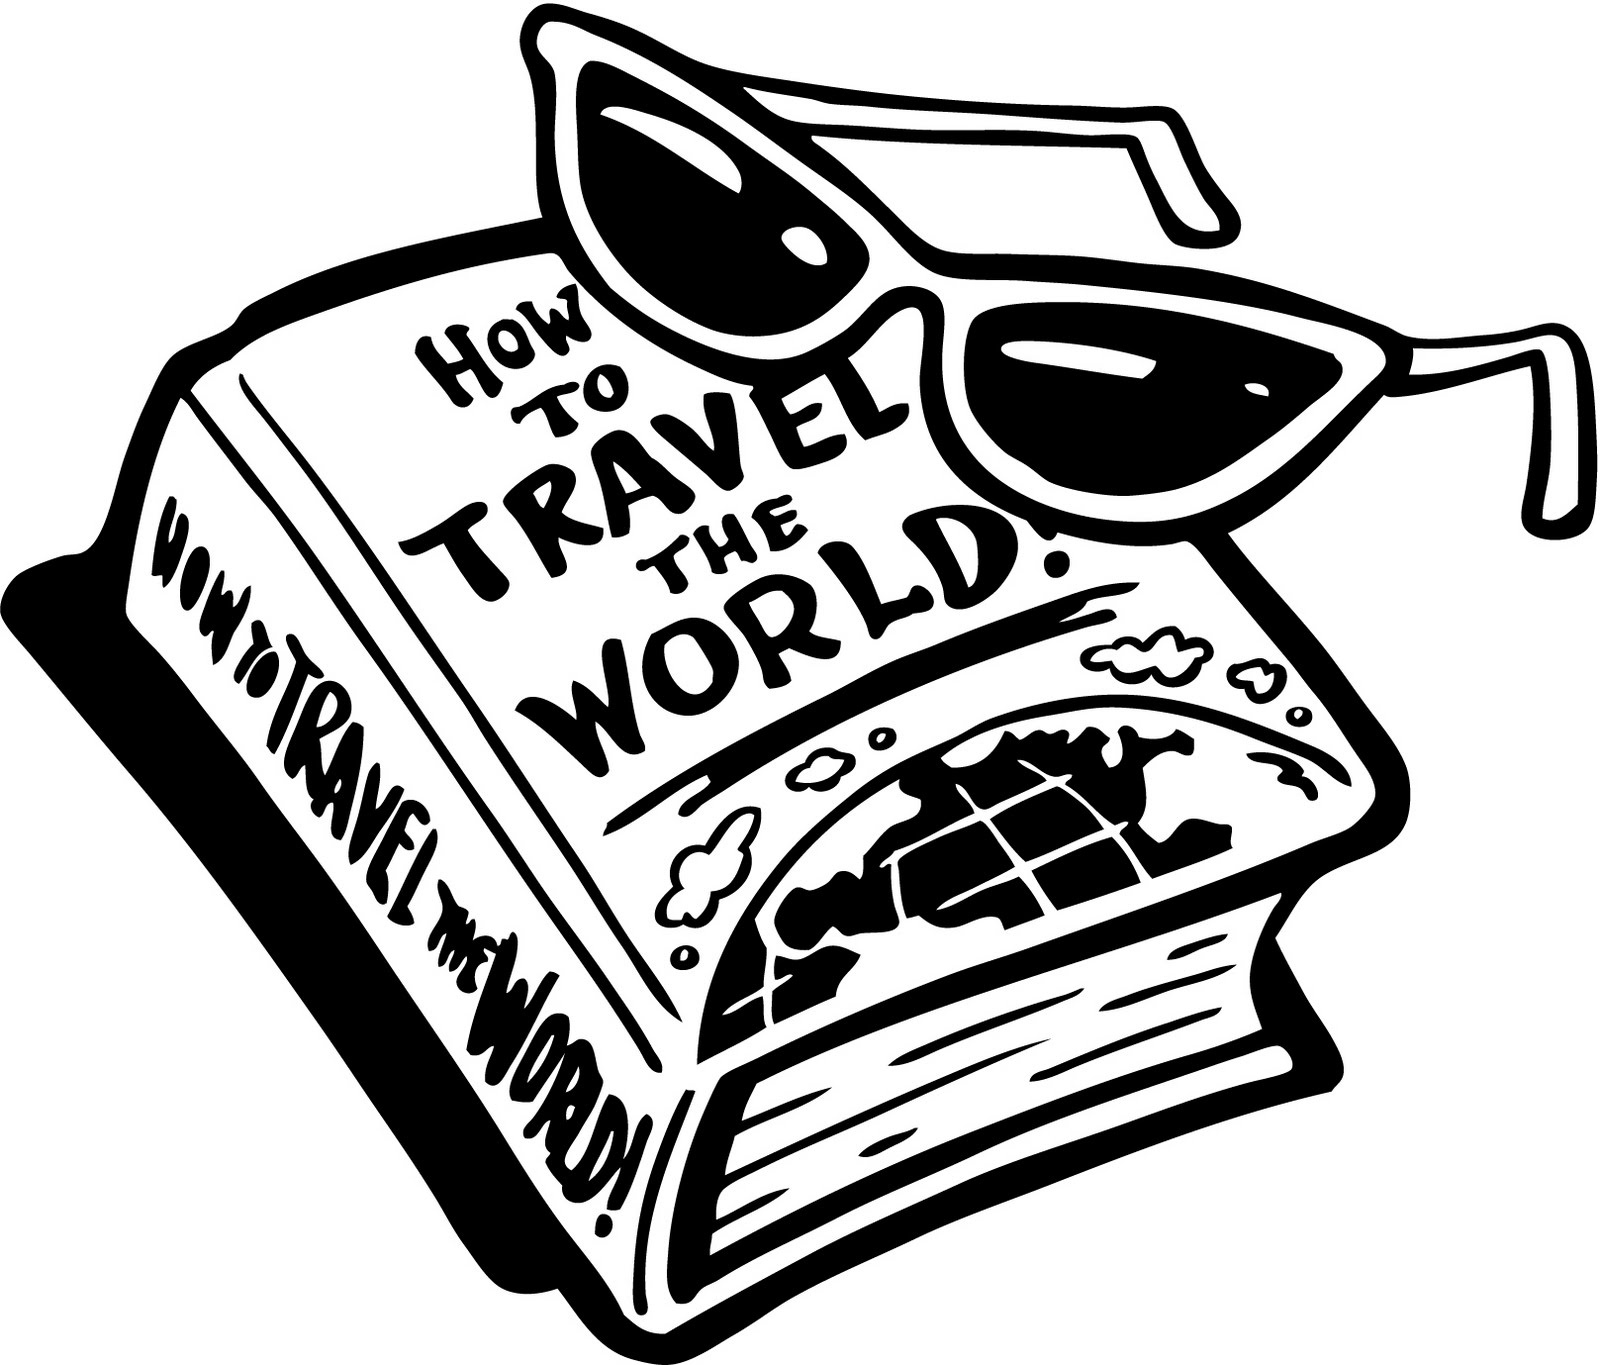 Clip art travel guide clipart clipart kid image #39125